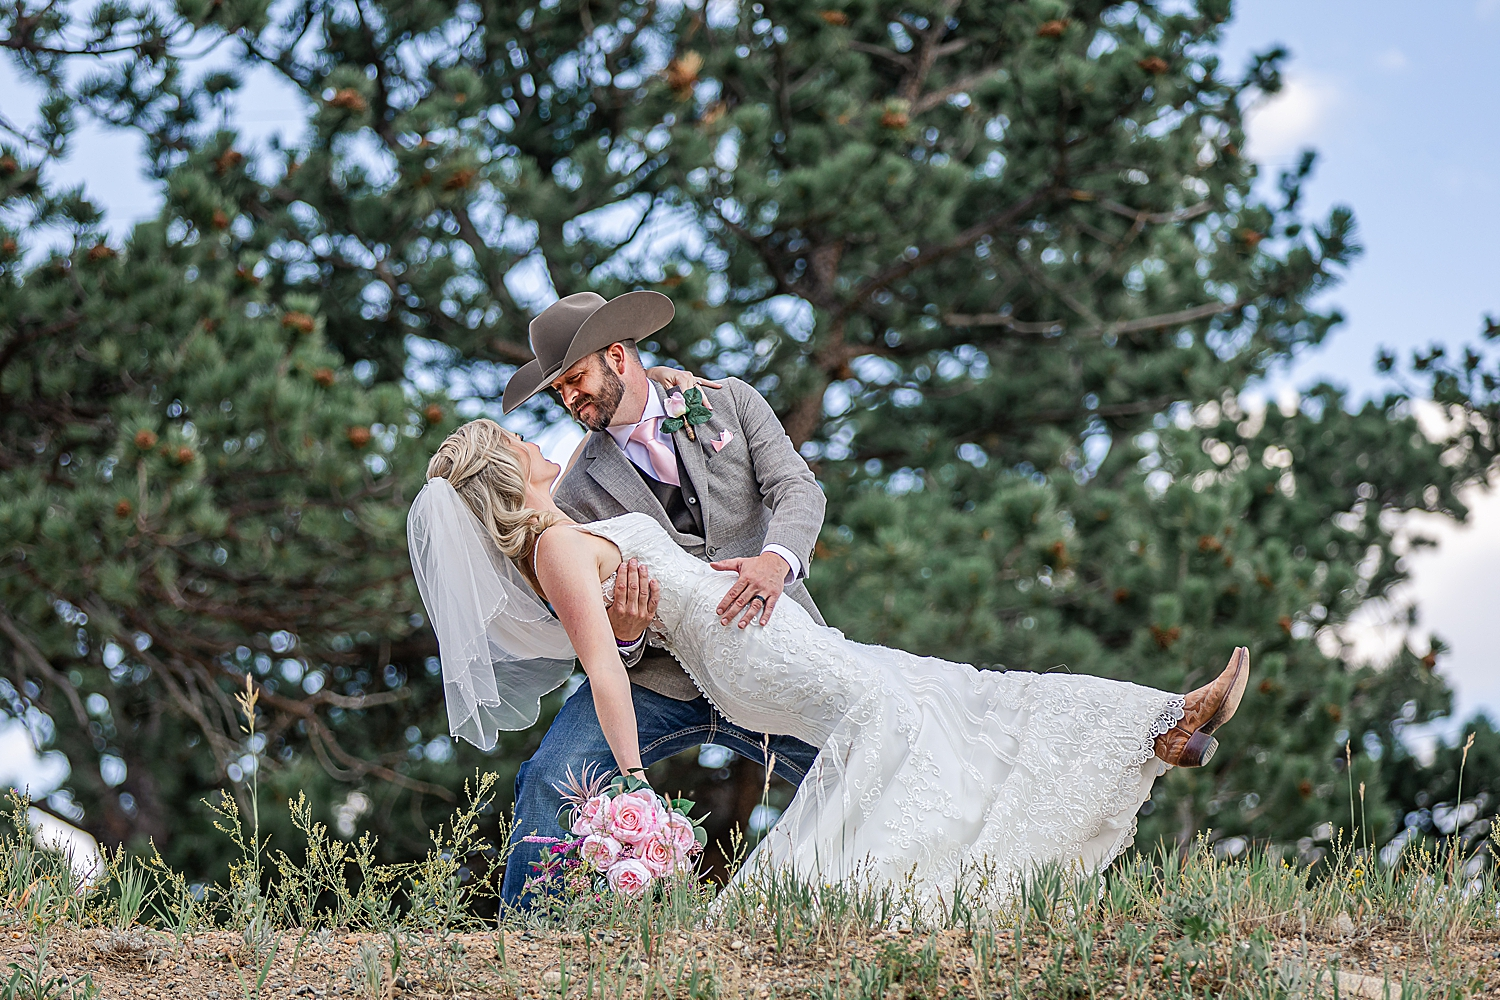 Carly-Barton-Photography-Rocky-Mountain-National-Park-Estes-Park-Wedding-Elopement_0045.jpg